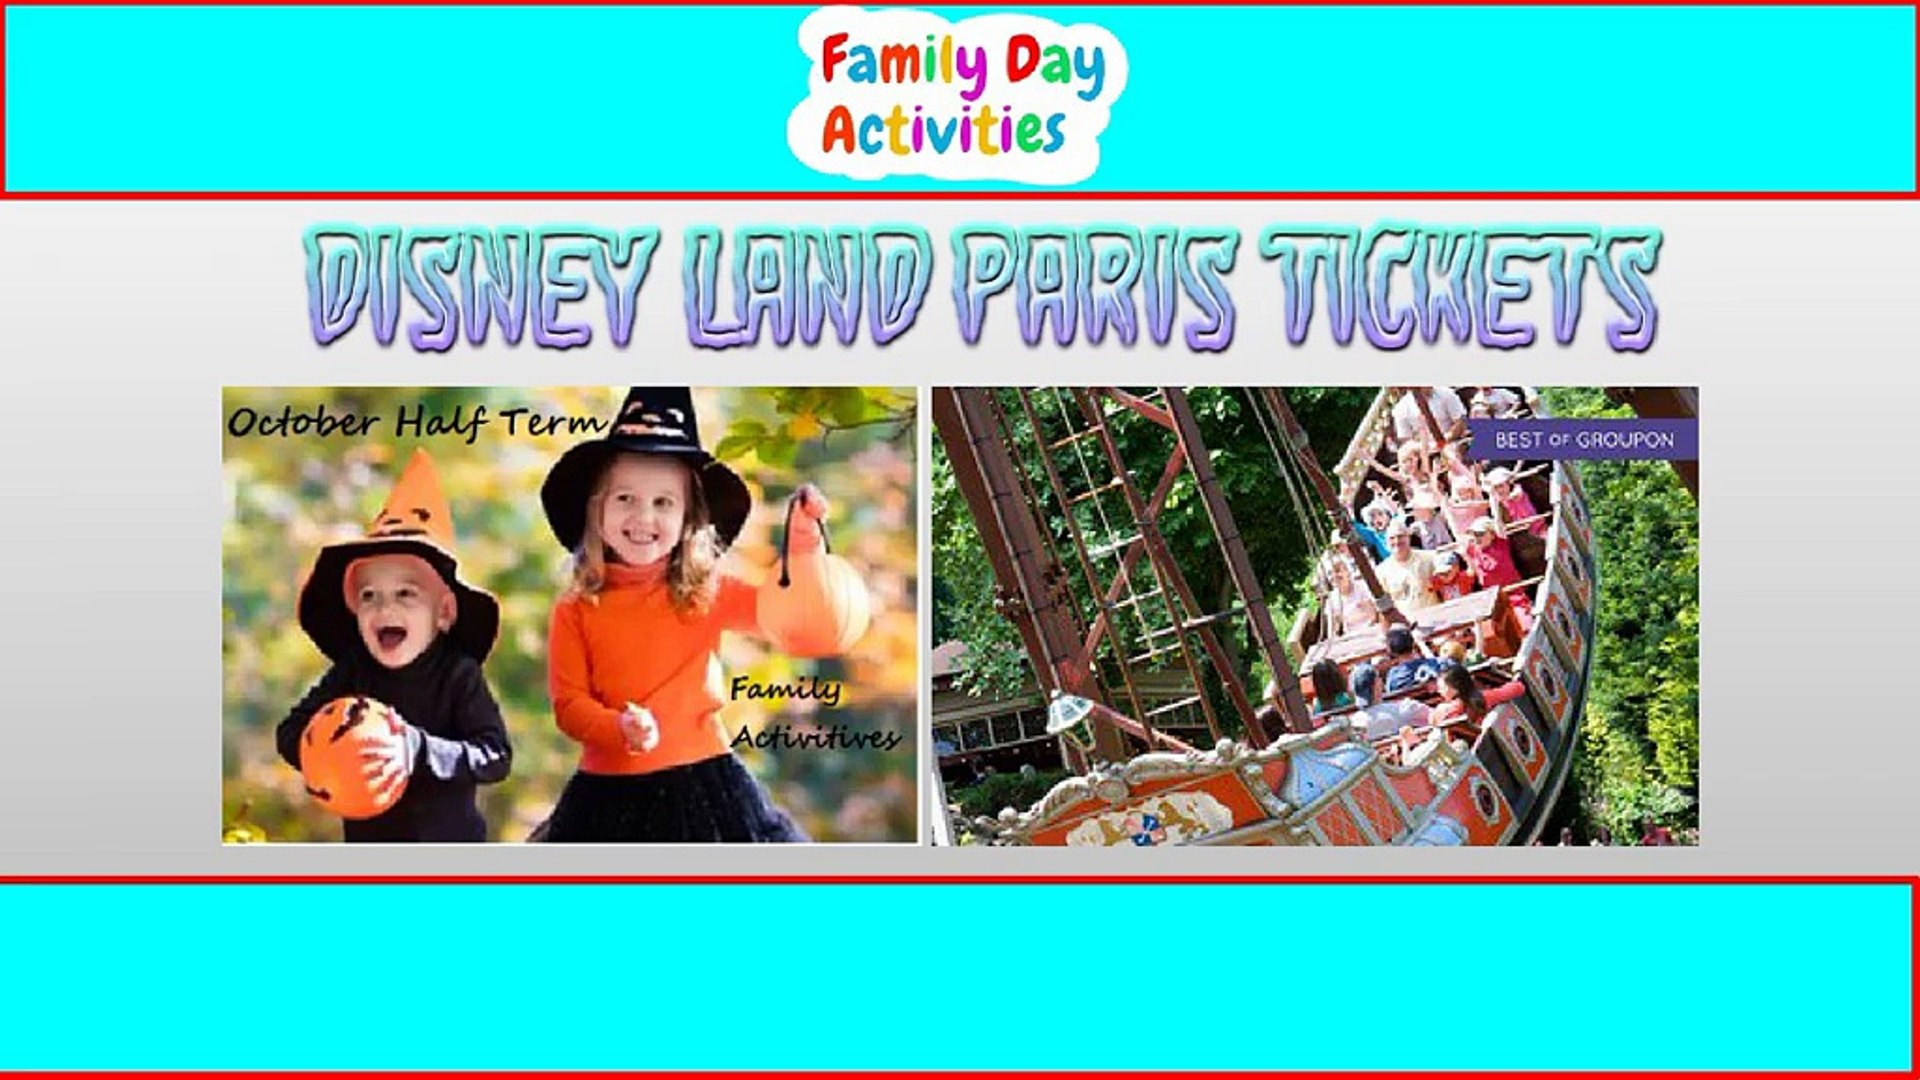 For Kids Days Out - Family Day Activities